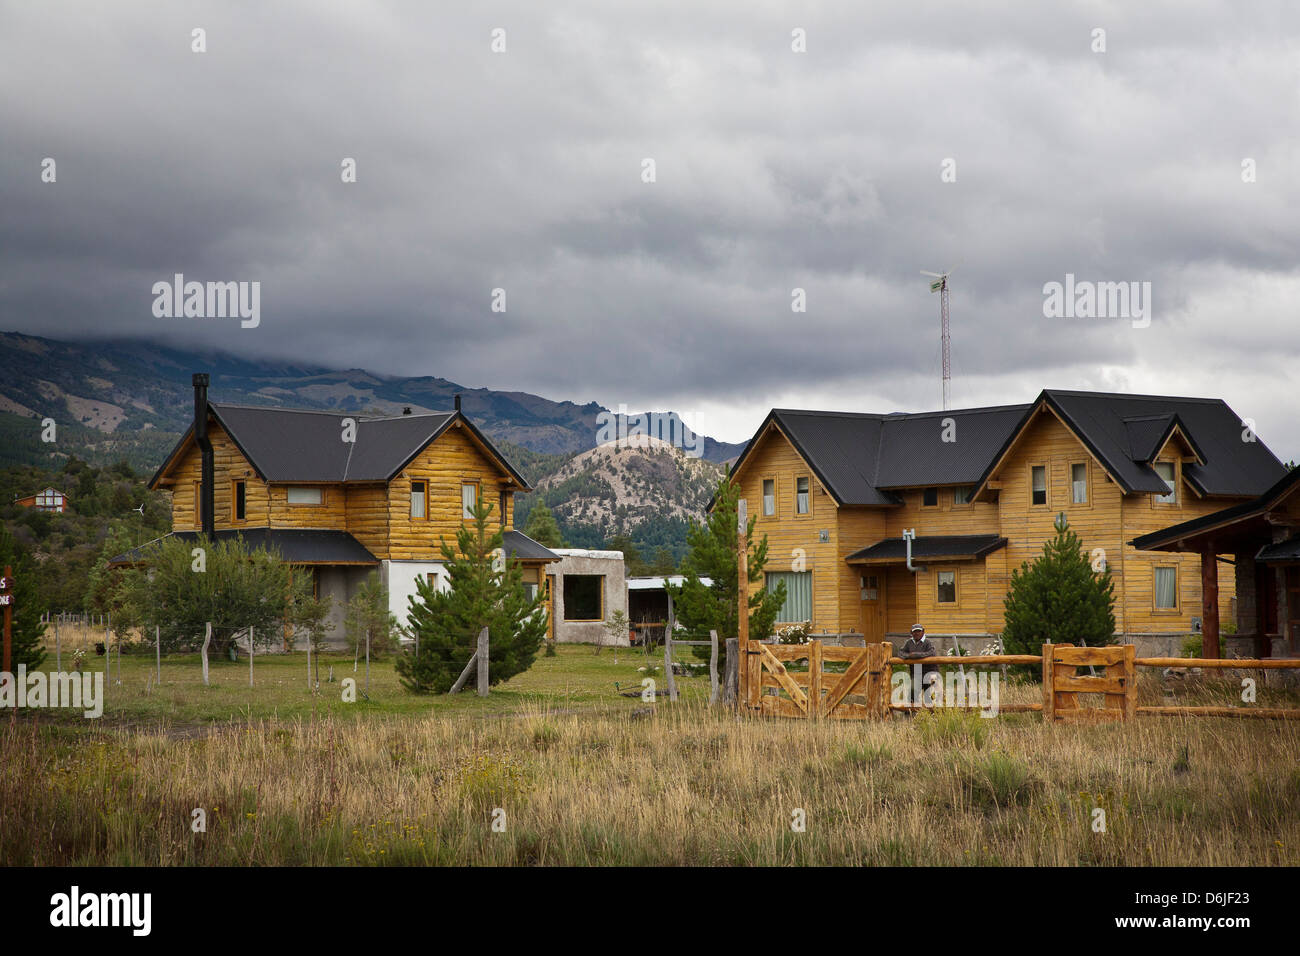 Alpine architecture in Villa Meliquina, Patagonia, Argentina, South America - Stock Image